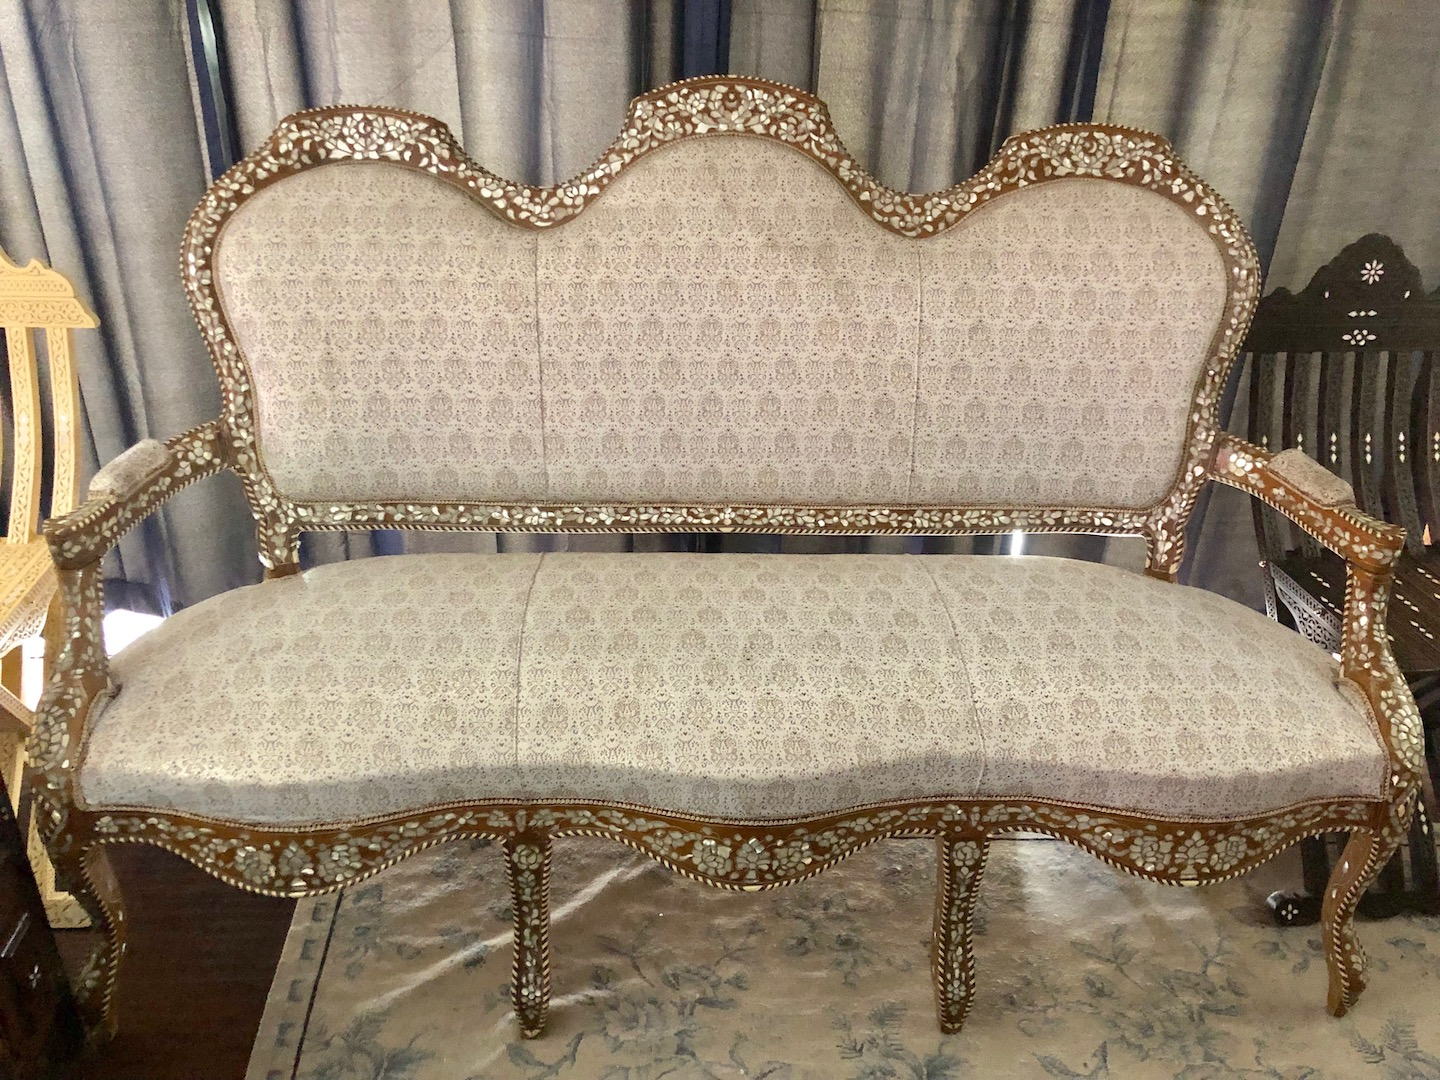 Antique Mother of pearl inlay sofa